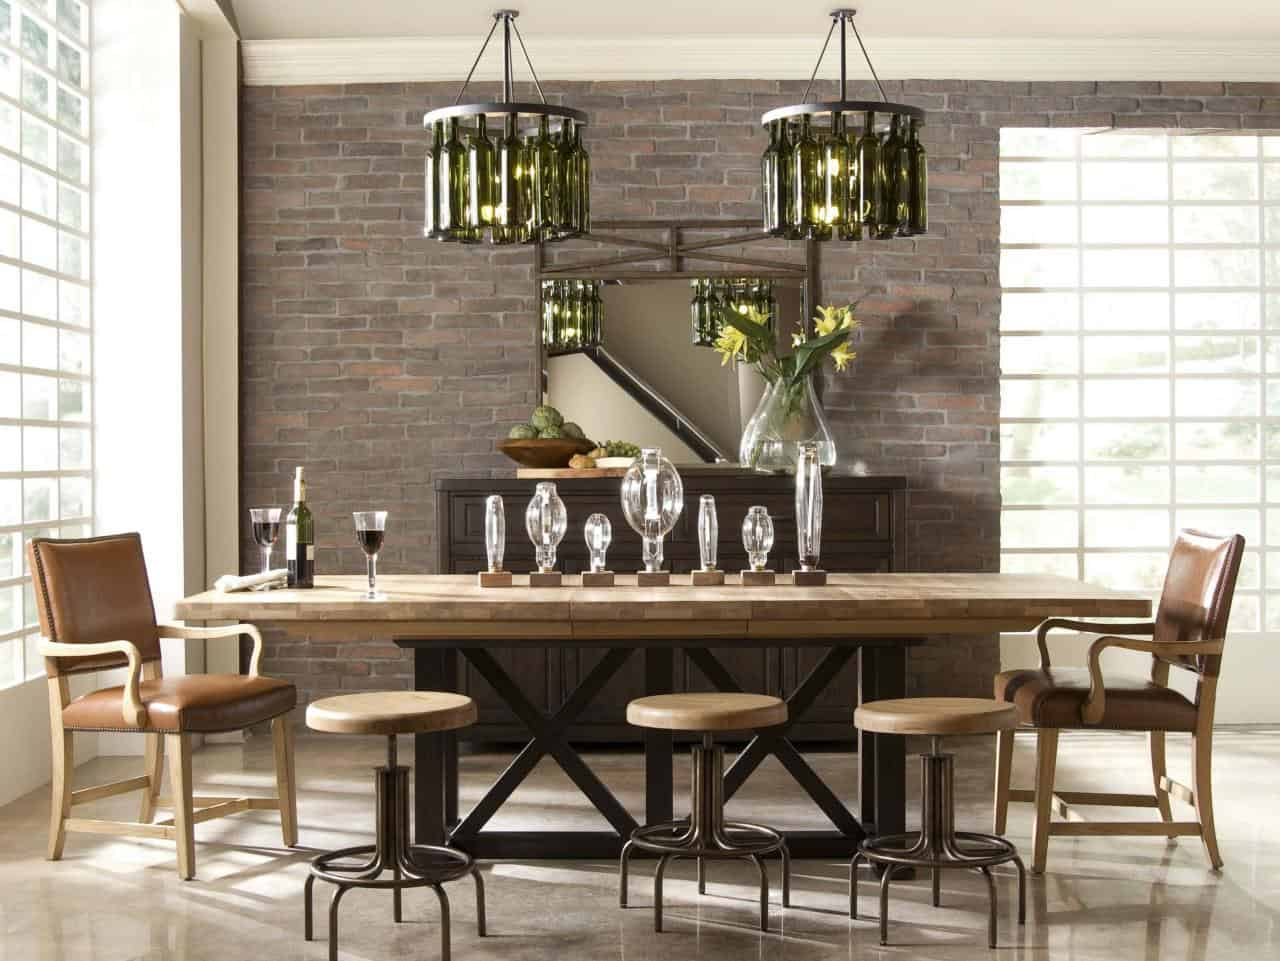 2020 Dining Room Trends - What to Expect